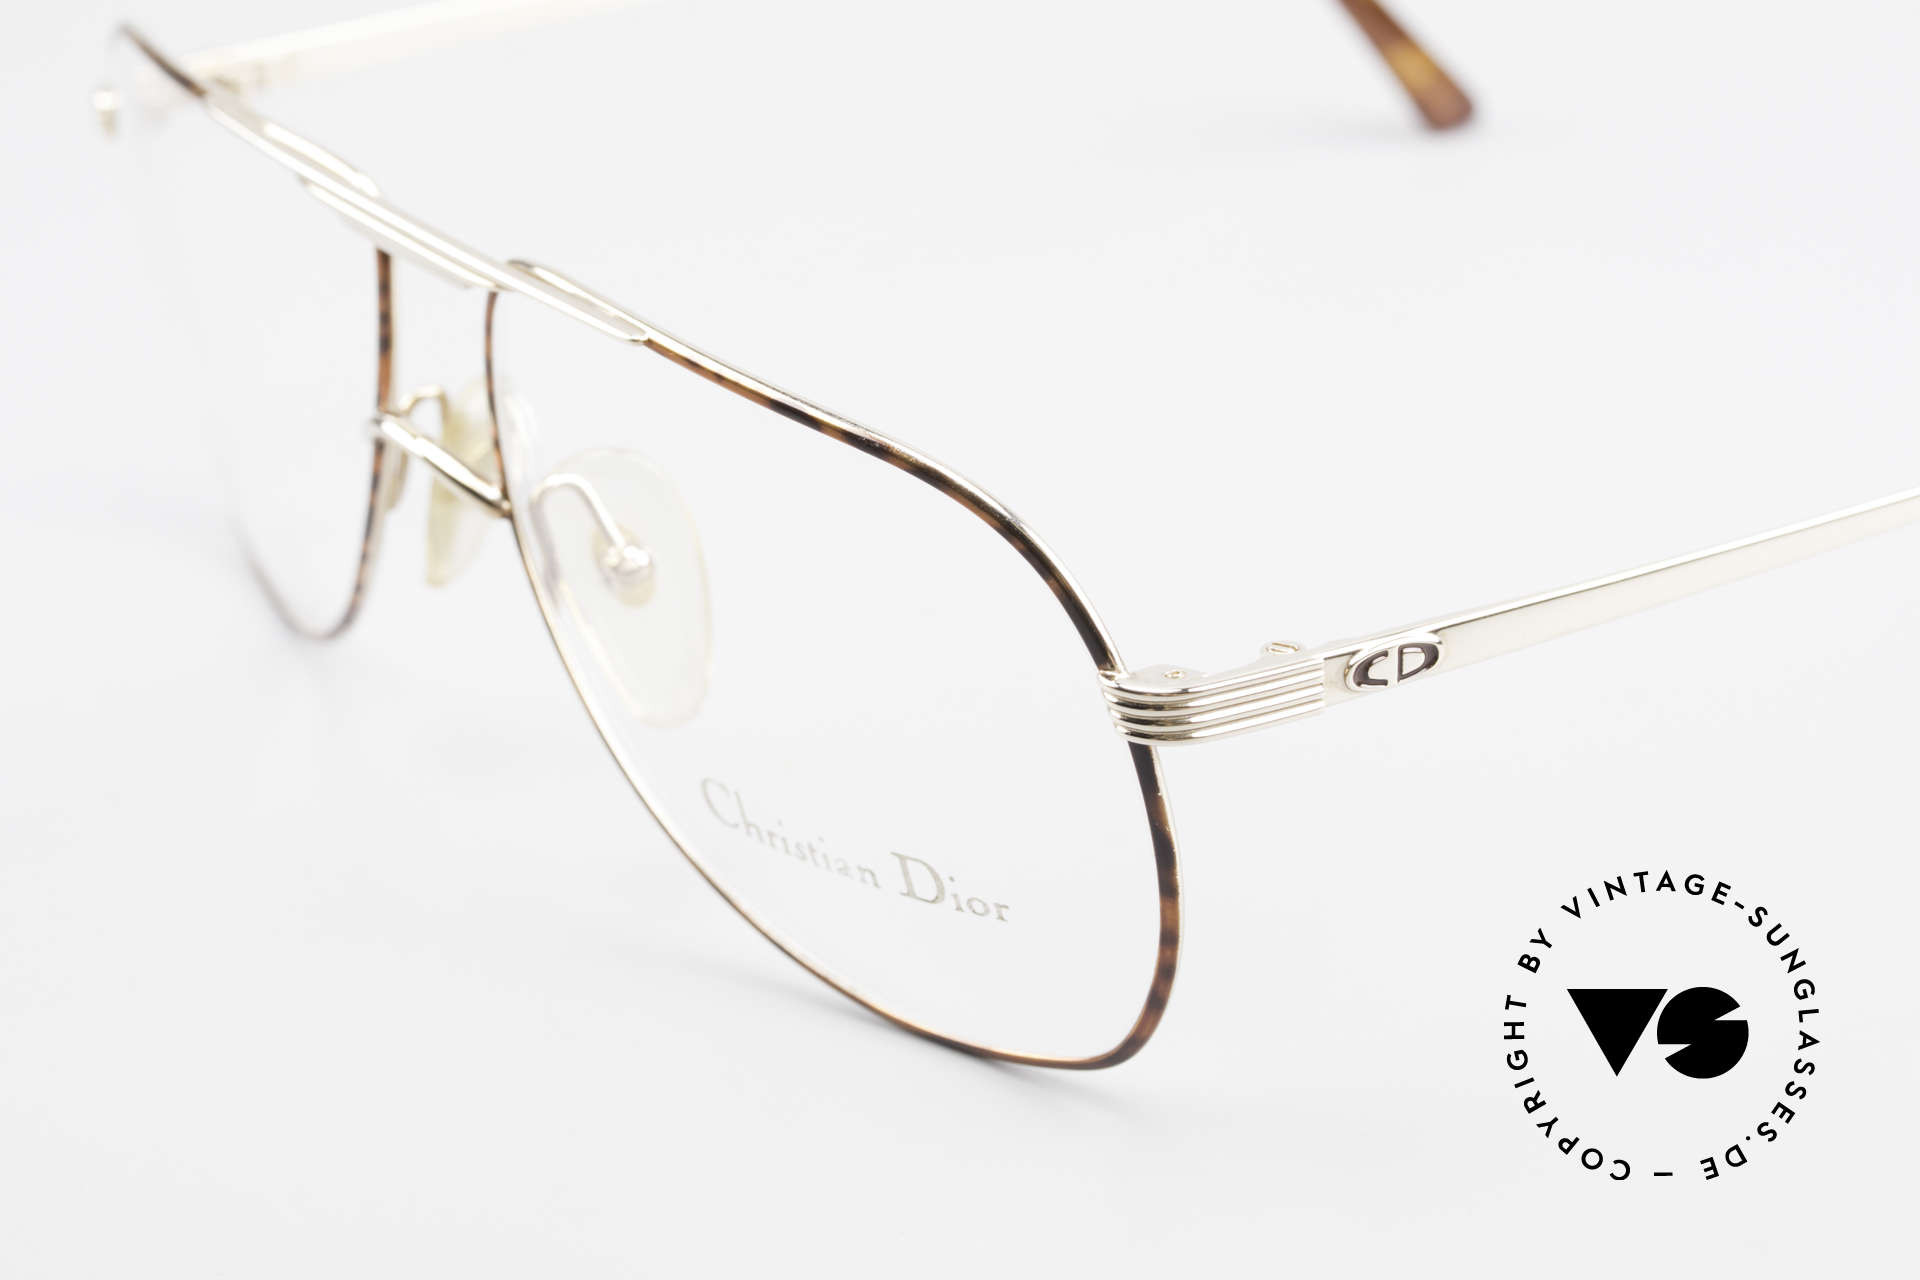 Christian Dior 2553 Vintage Glasses Aviator Style, never worn (like all our vintage Dior eyewear), Made for Men